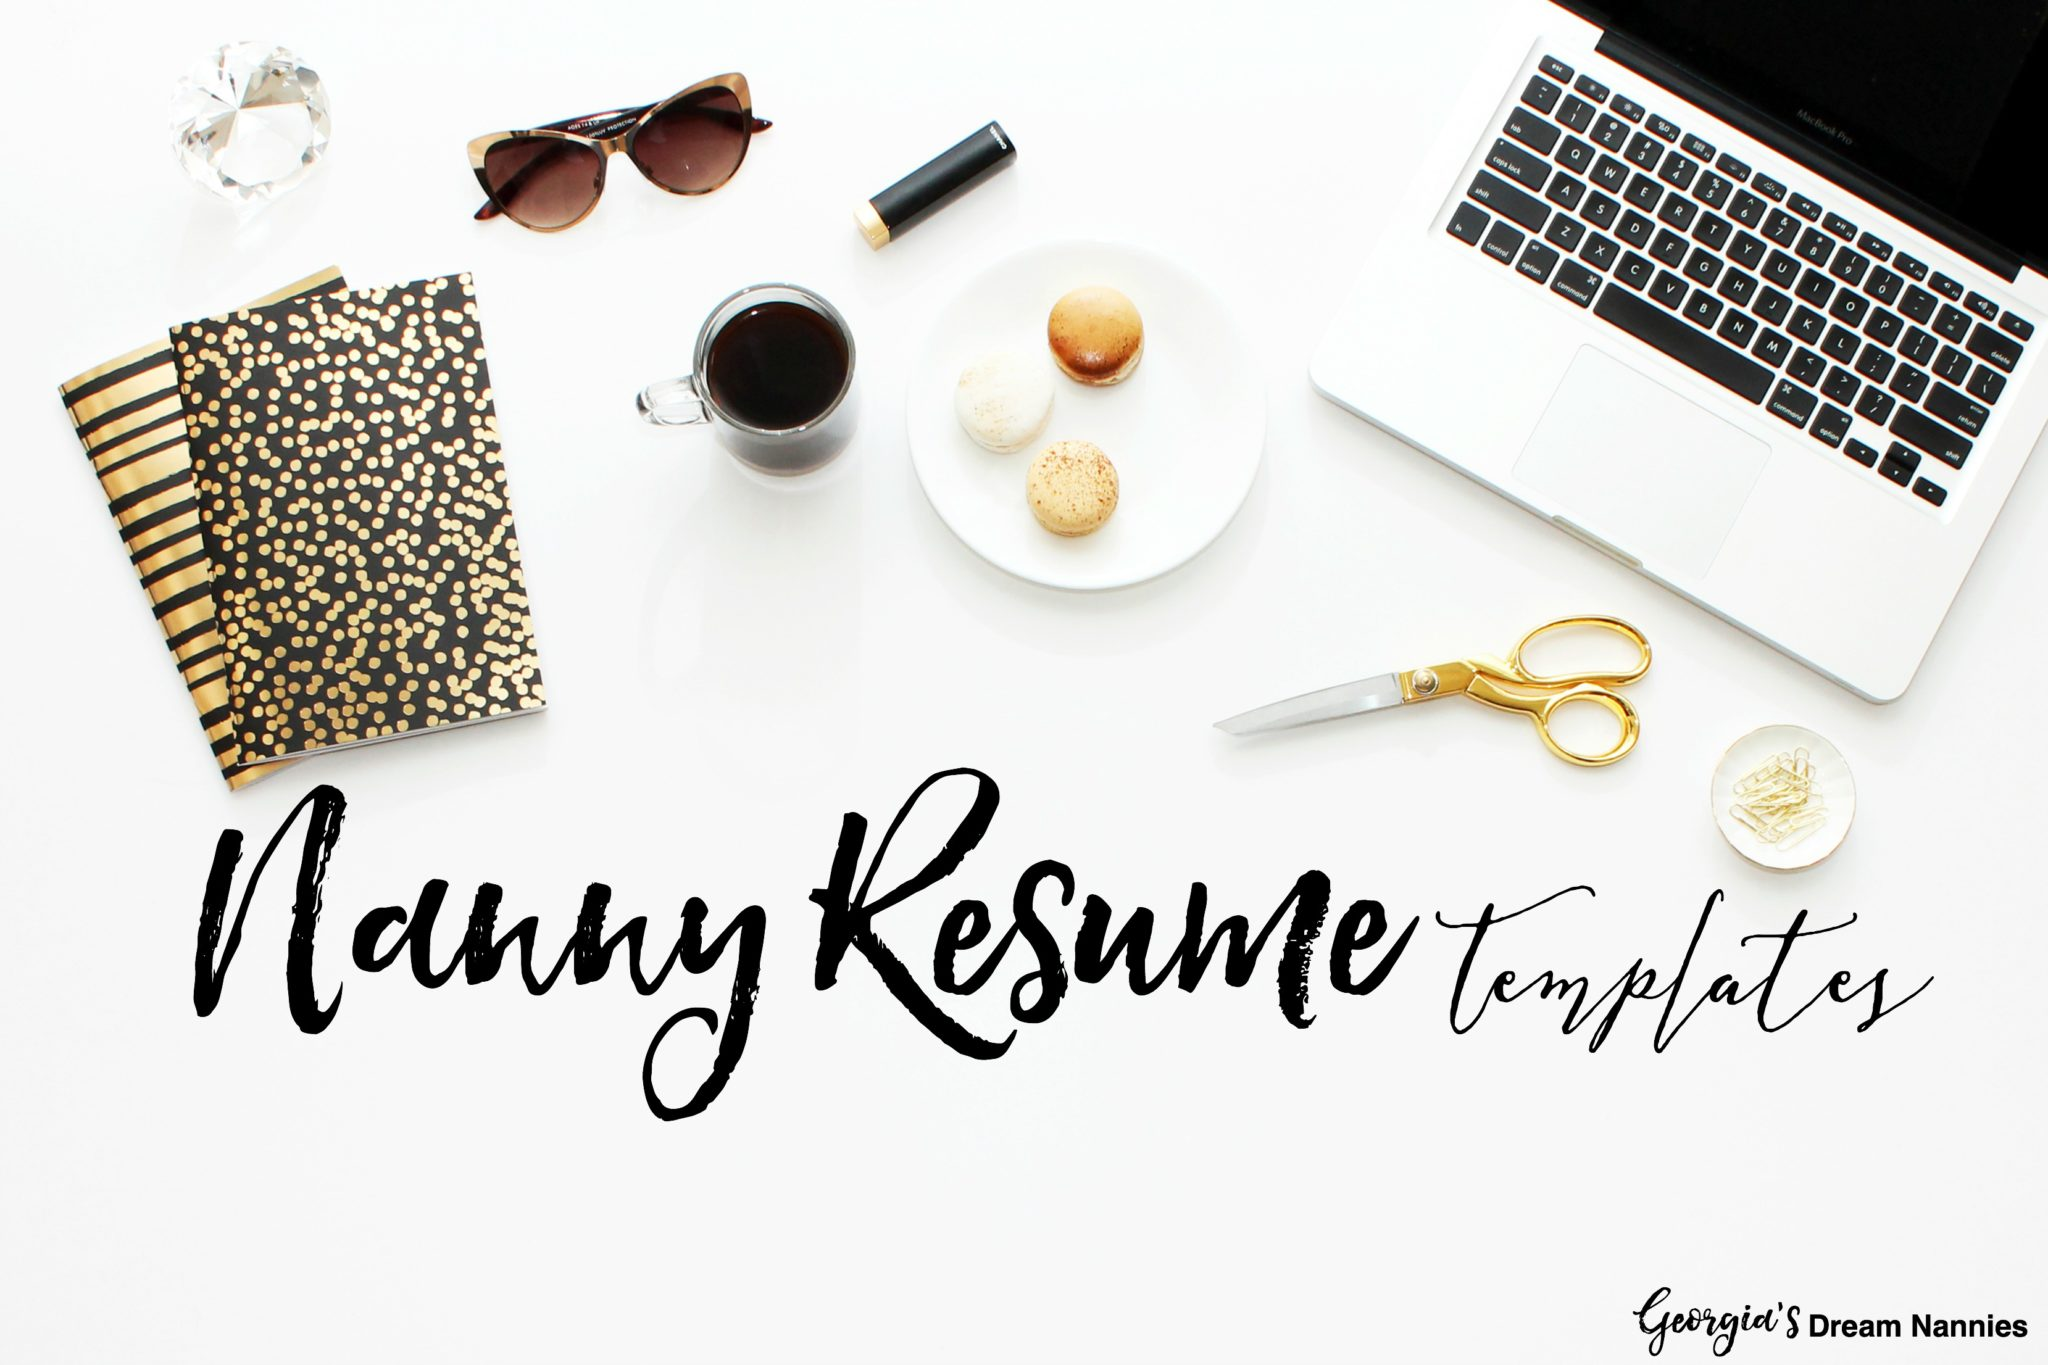 Resume writing services in kennesaw ga